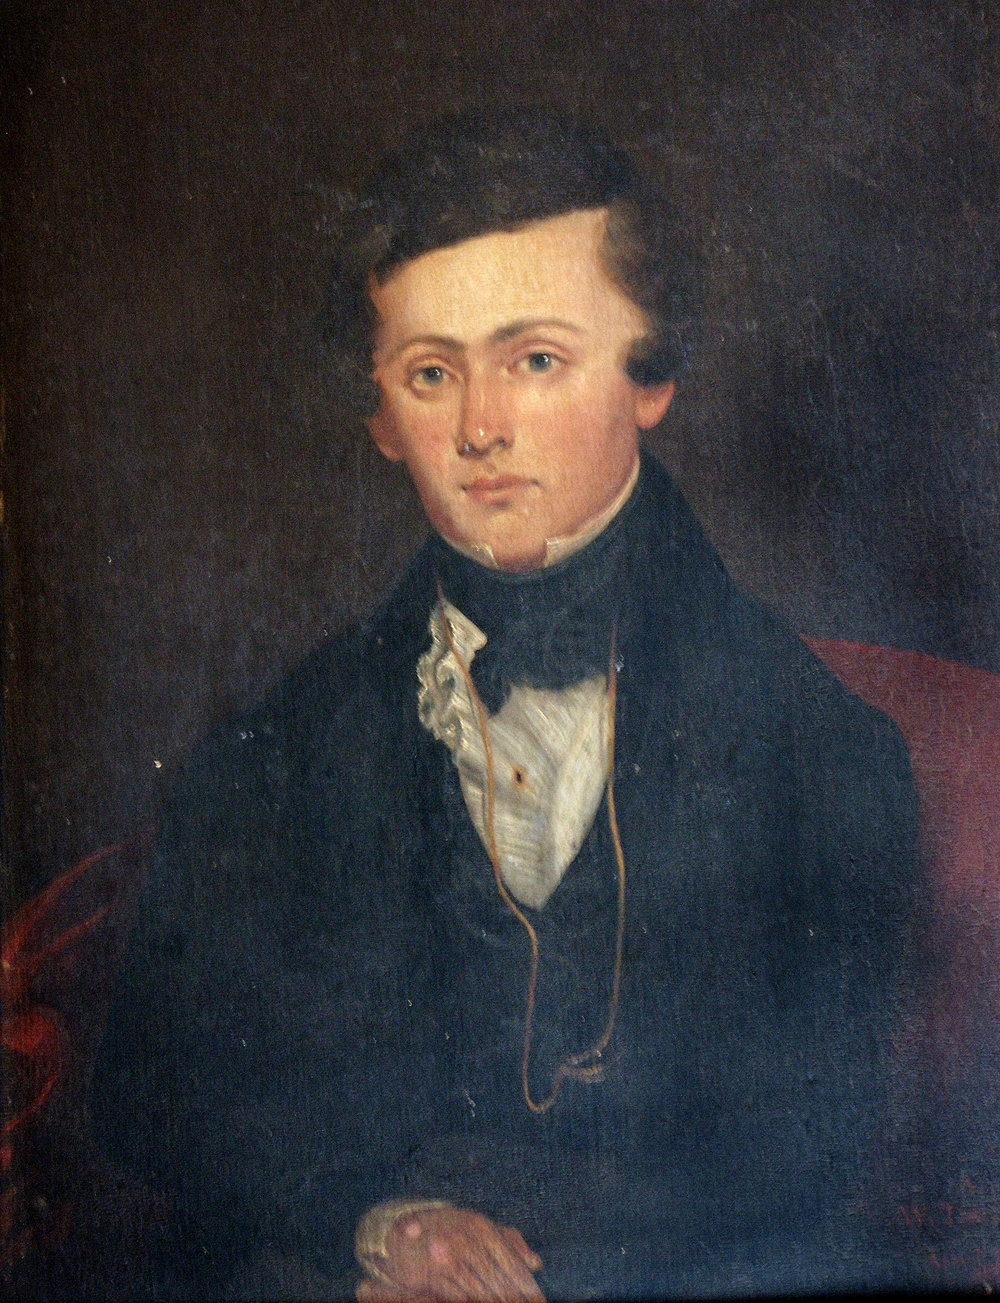 Wm Canfield 1836